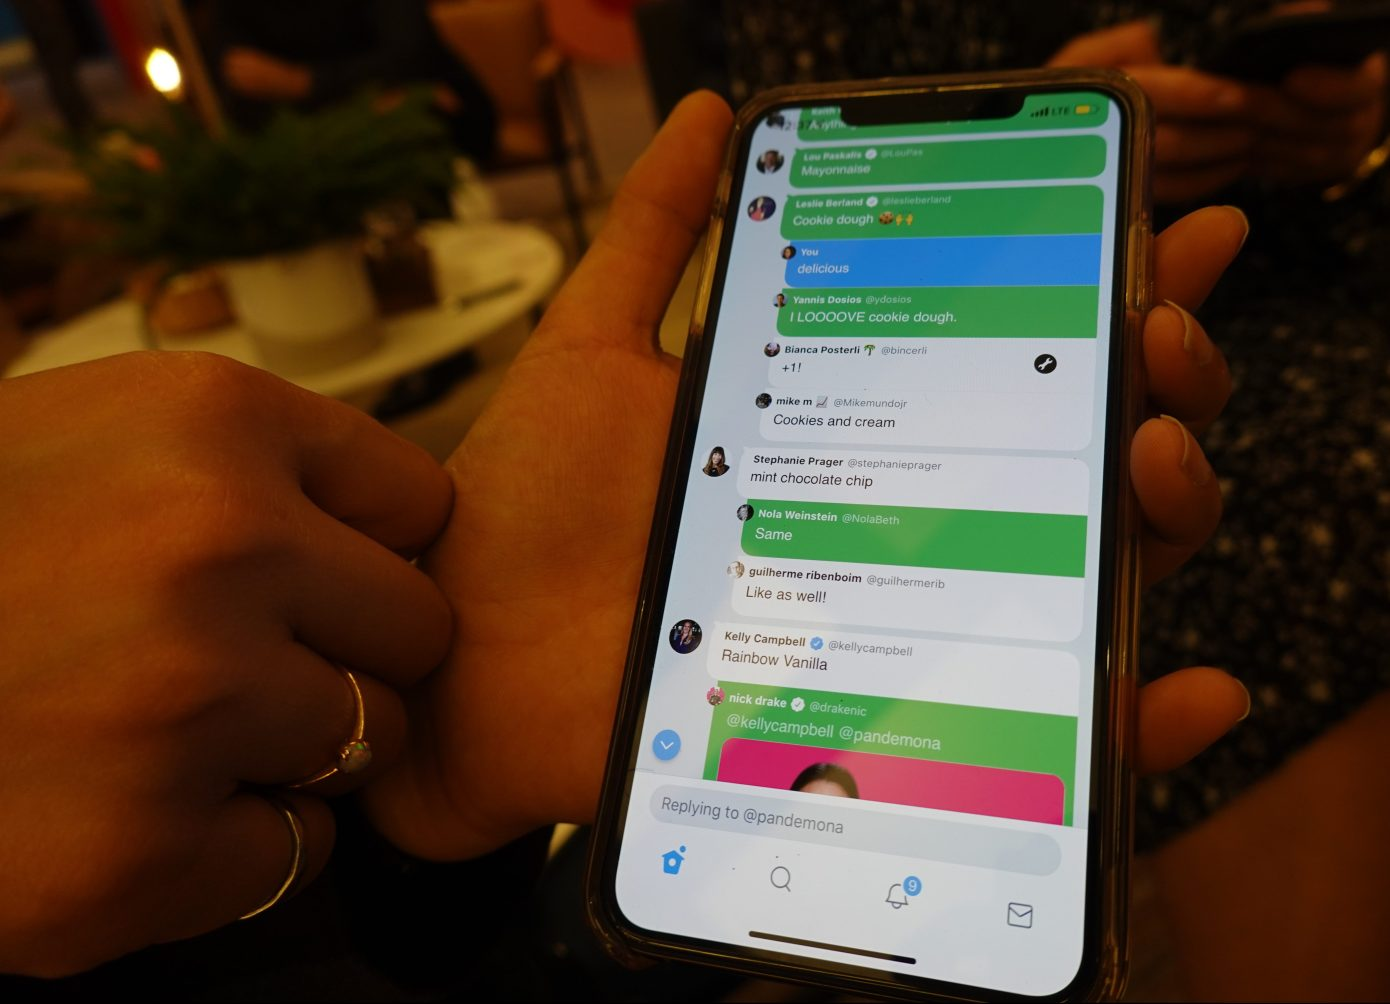 Twitter has launched a new beta program with early access to new features